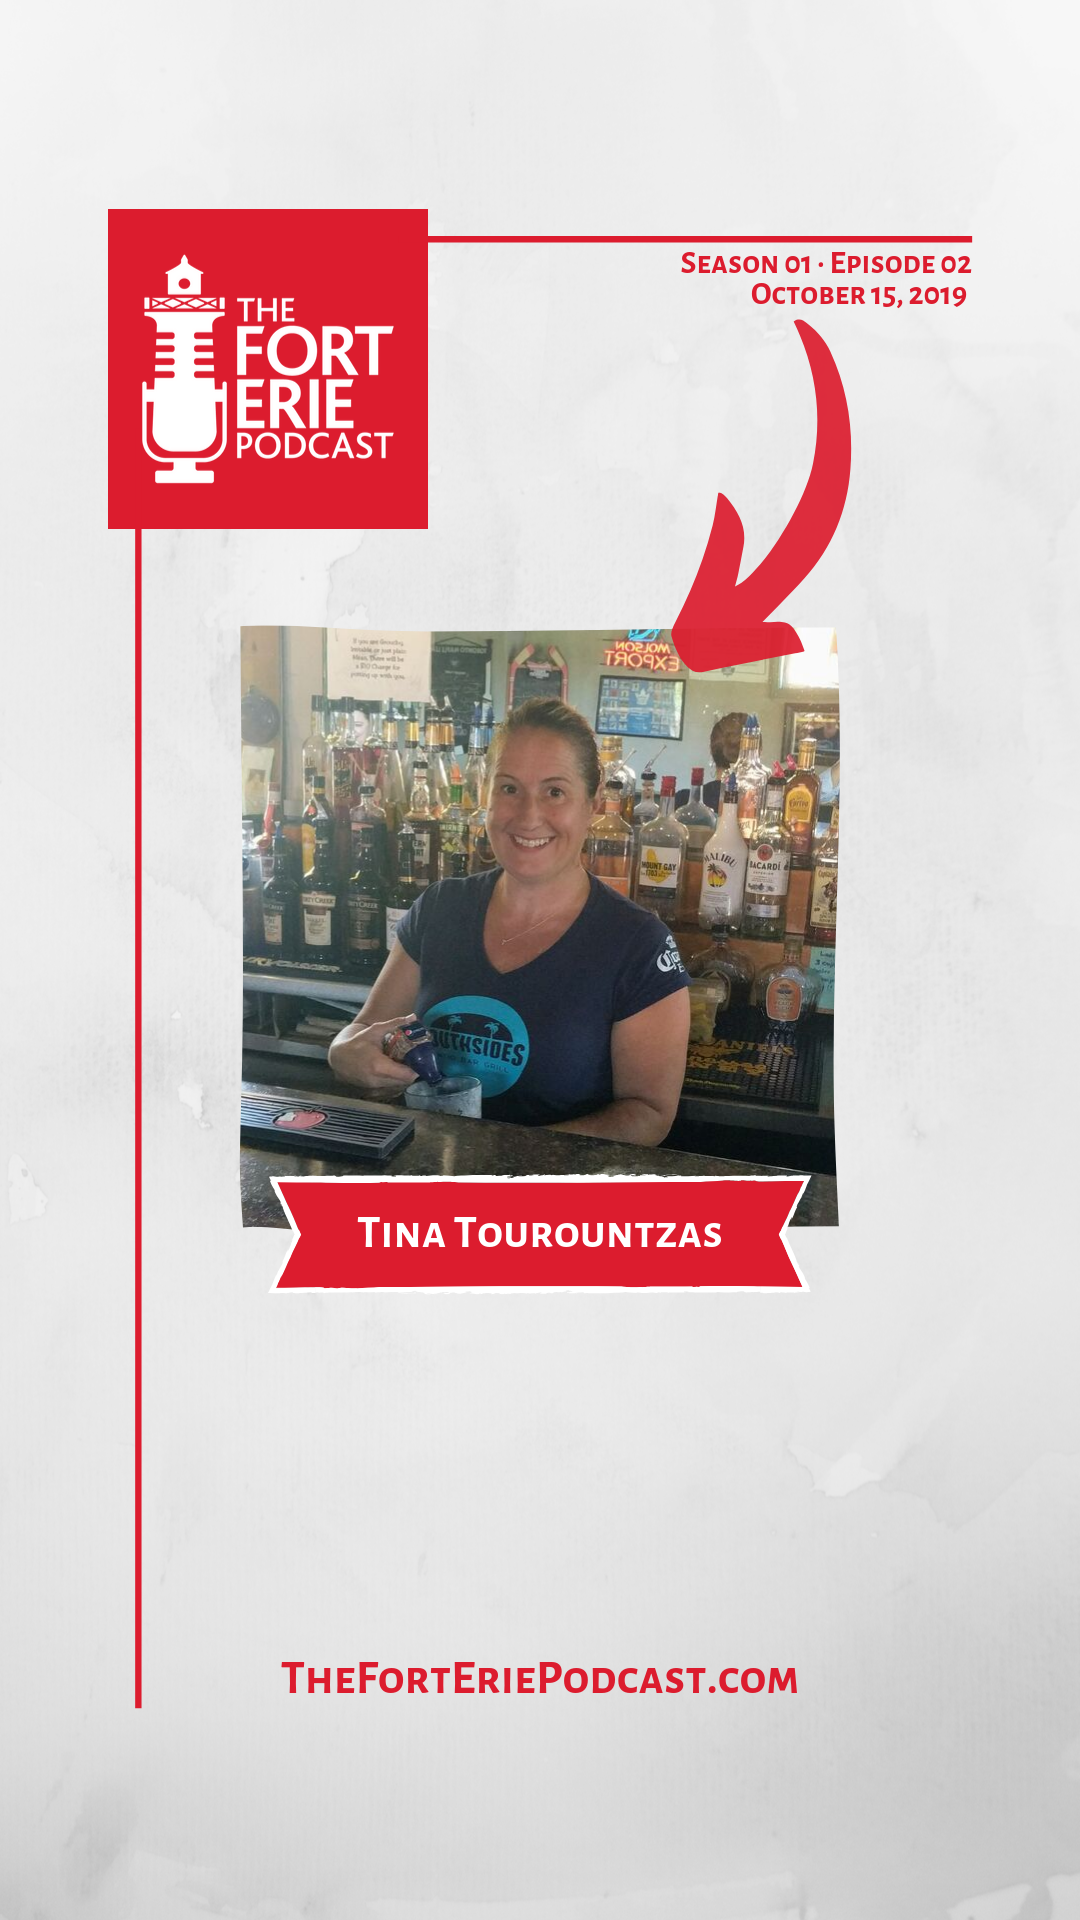 After relocating to Fort Erie many years ago, Tina Tourountzas founded Southsides Patio Bar and Grill with one simple vision in mind — to keep customers coming back for their \